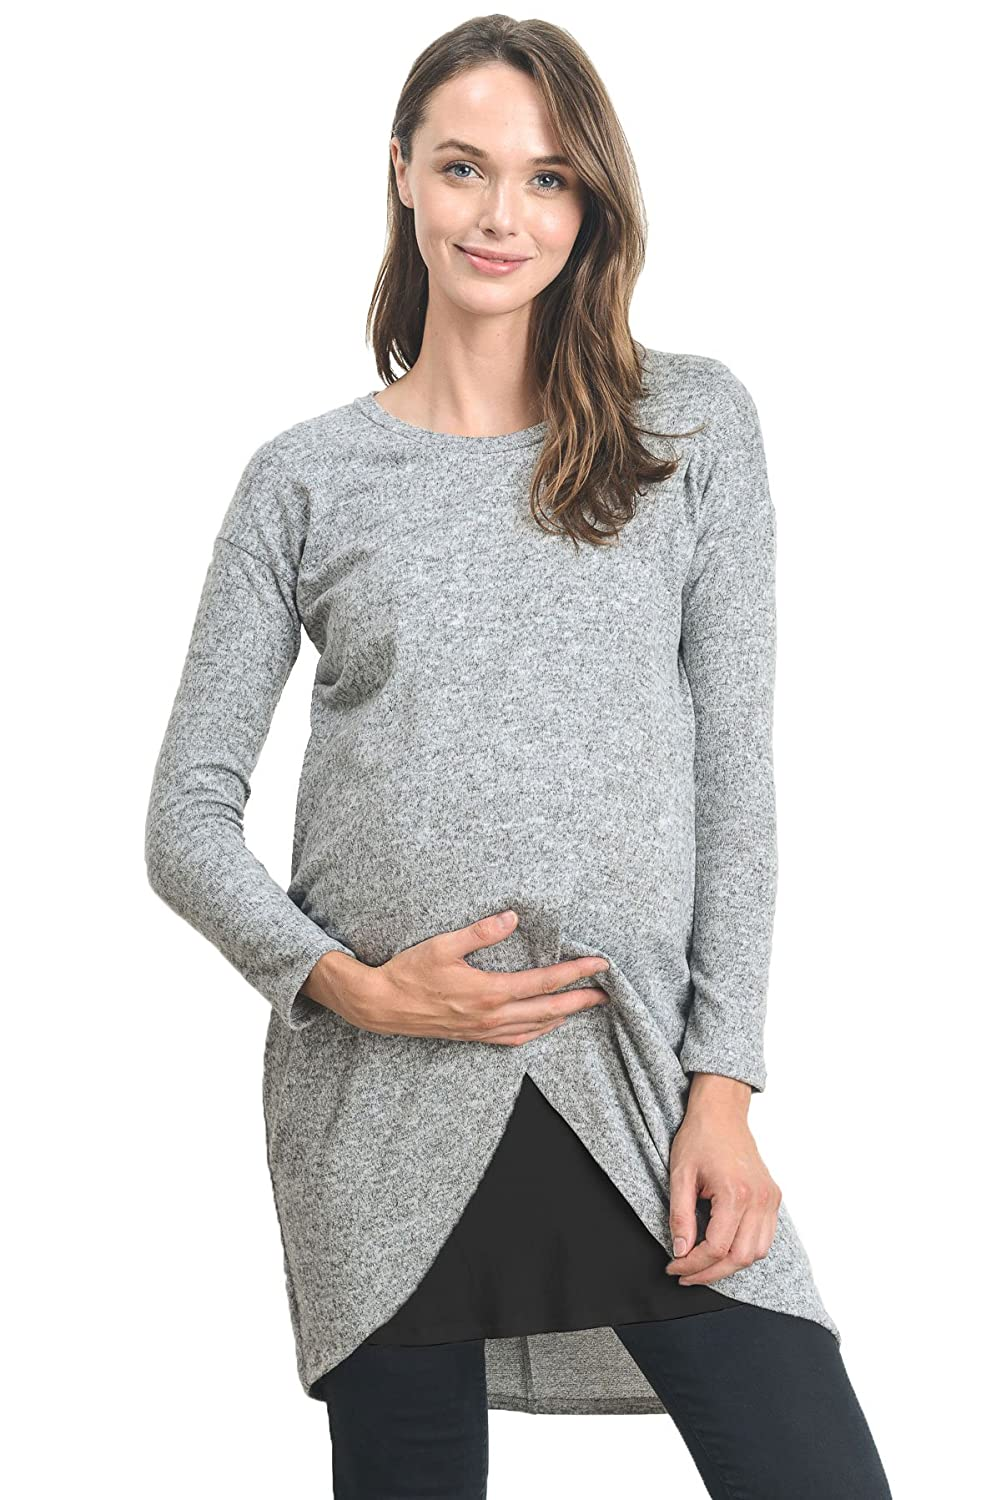 Hello MIZ Women's Sweater Knit Long Sleeve Maternity Nursing Tunic Dress